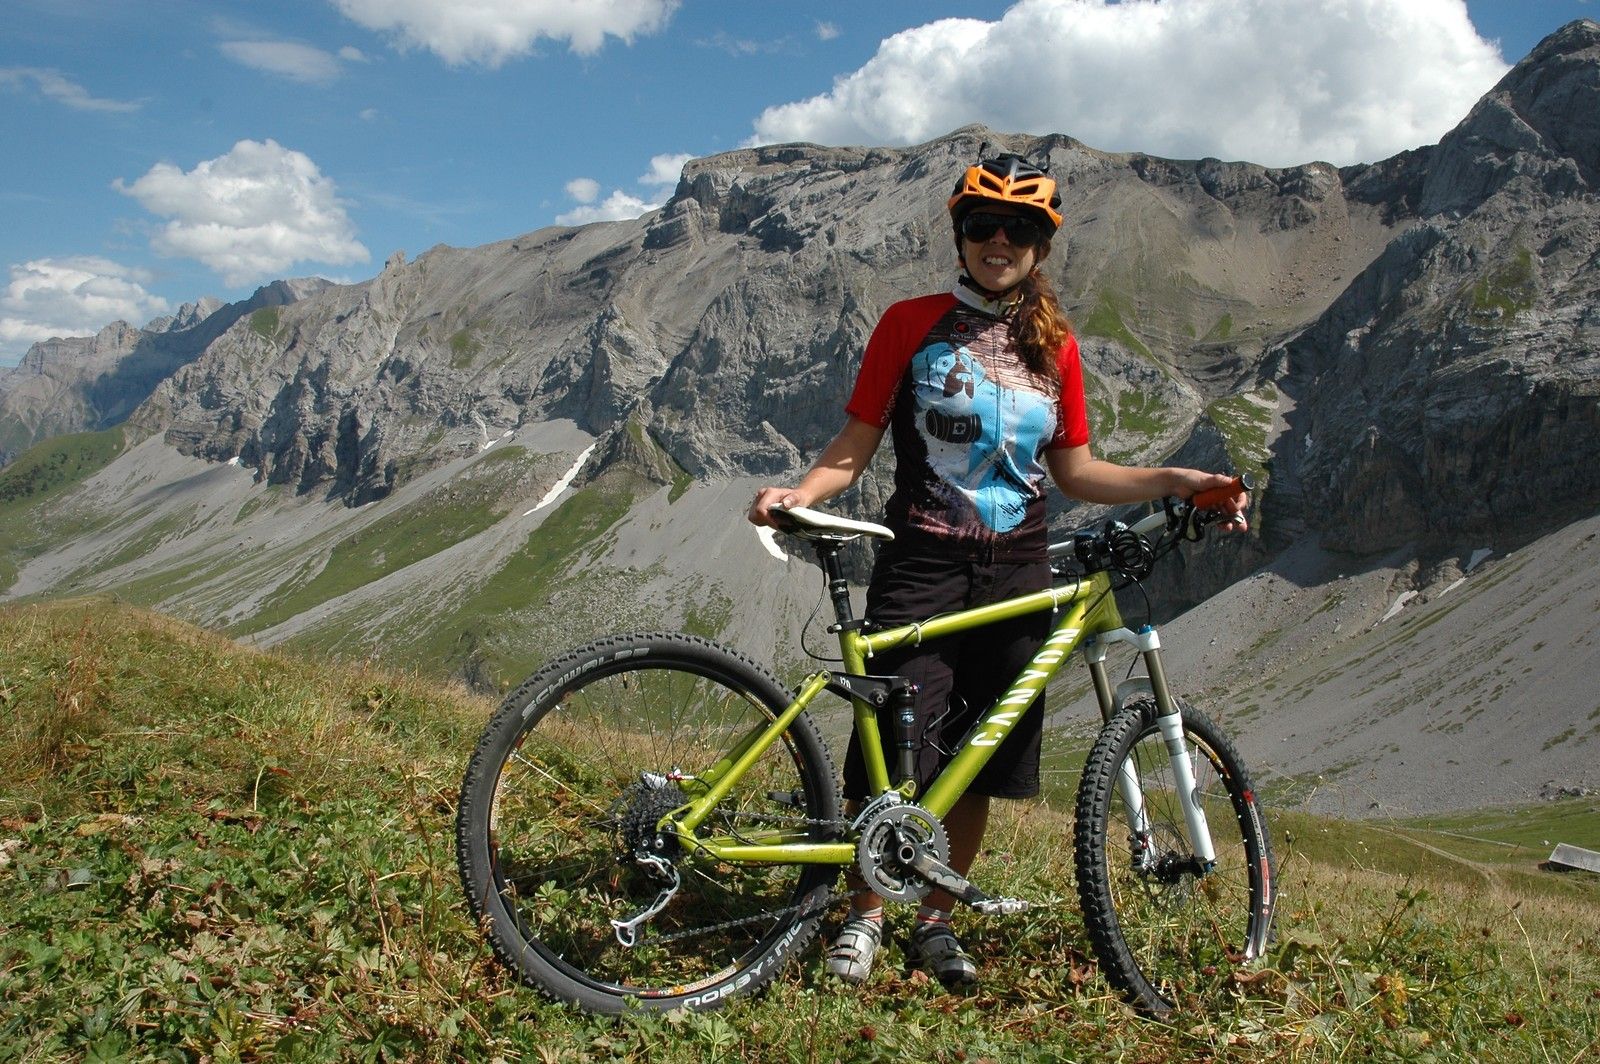 A shot from an epic several-day tour in Adelboden, Switzerland in 2012.